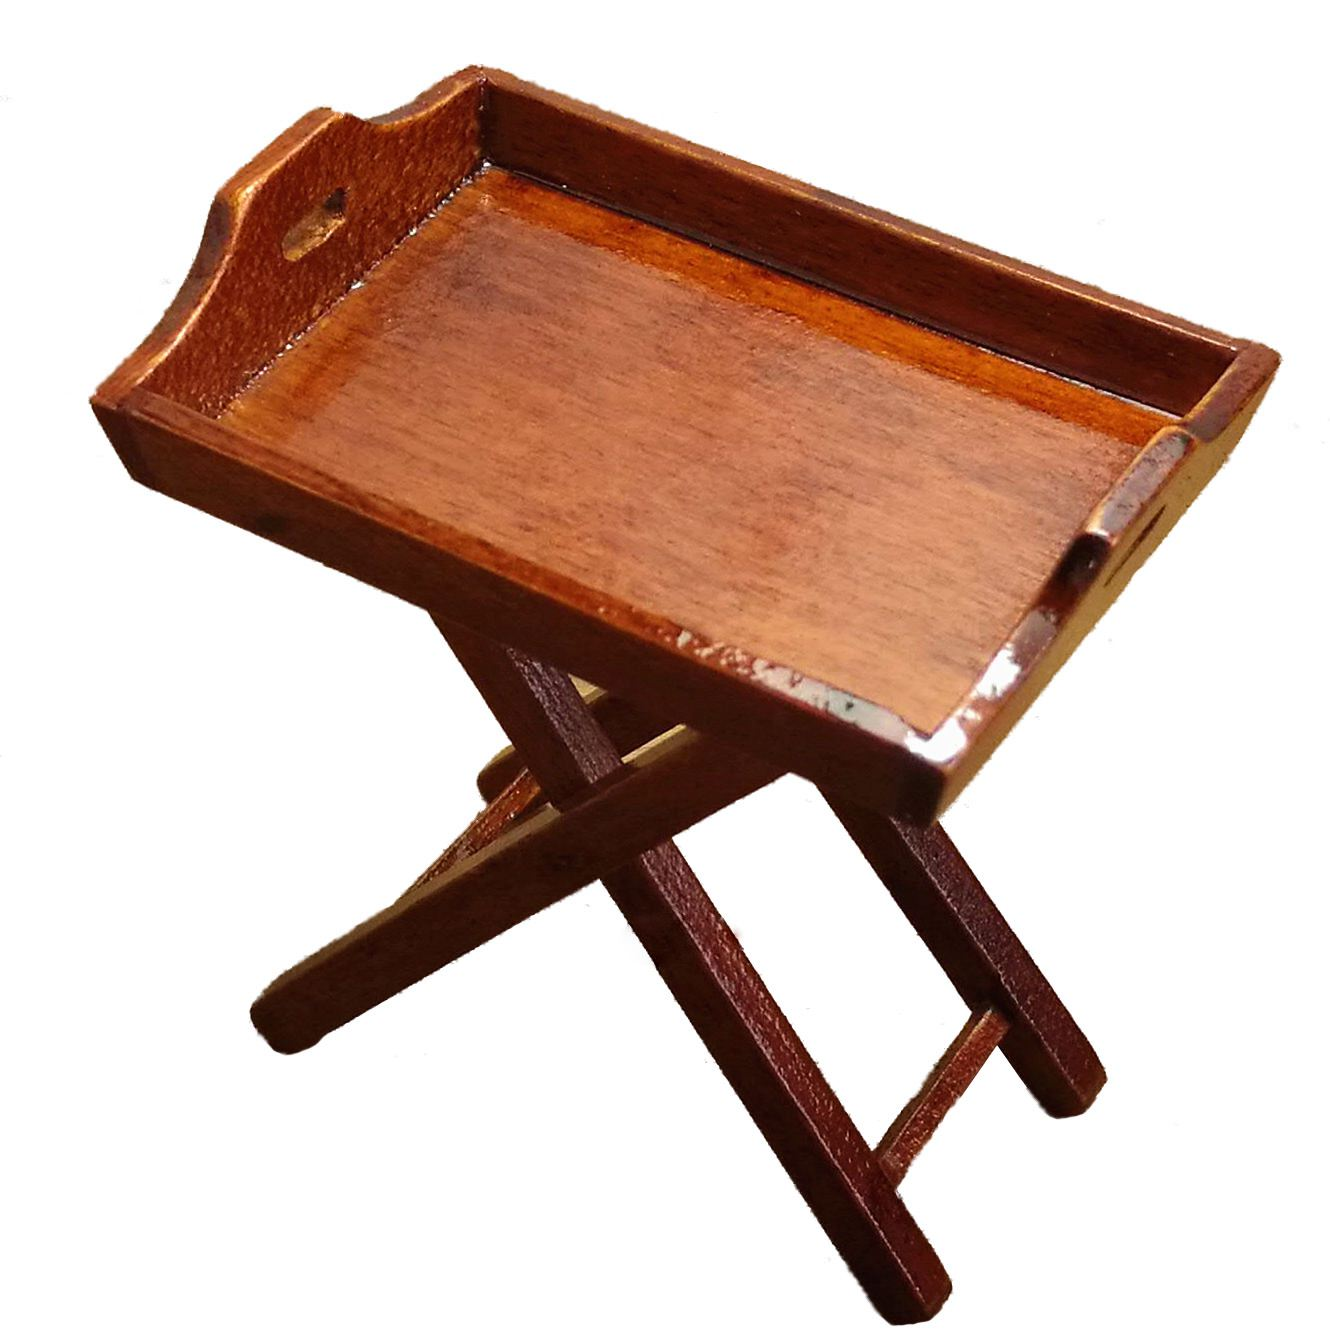 Dollhouse Miniature Toy 1:12 Kitchen Wooden Tray Table Height 6cm